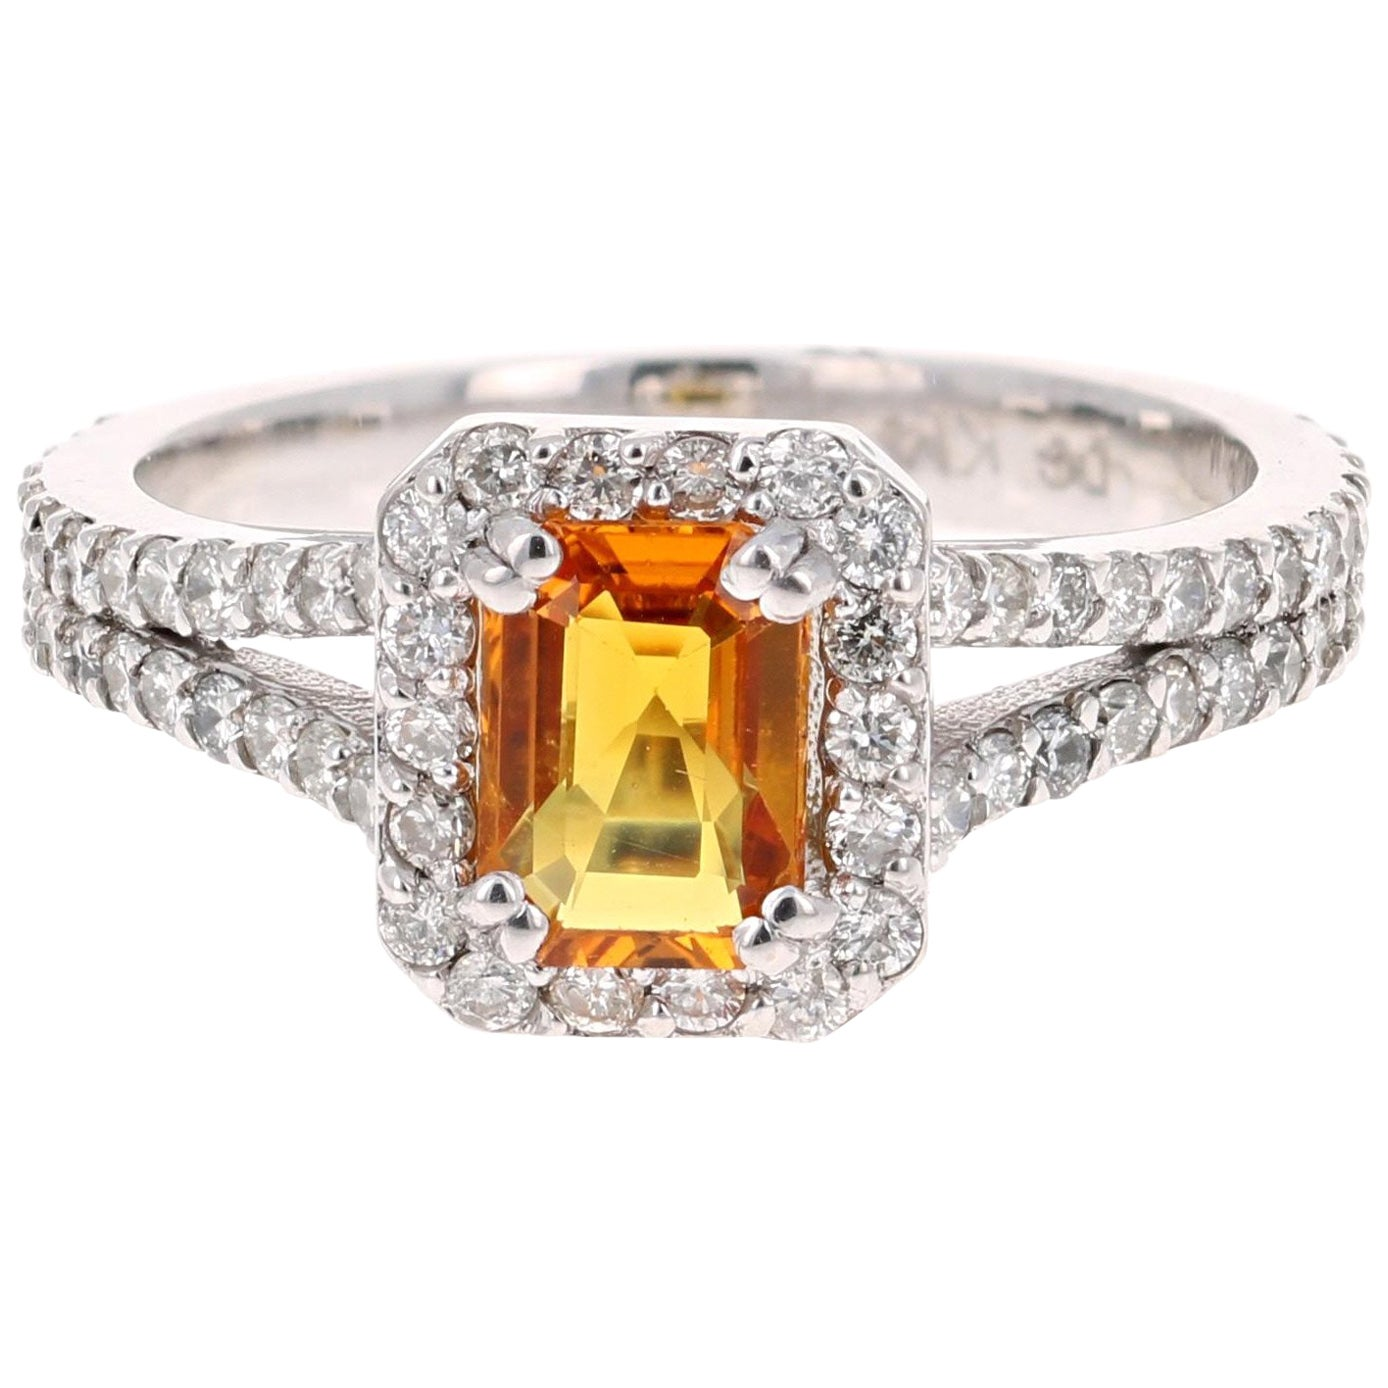 1.96 Carat Orange Sapphire Diamond White Gold Cocktail Ring